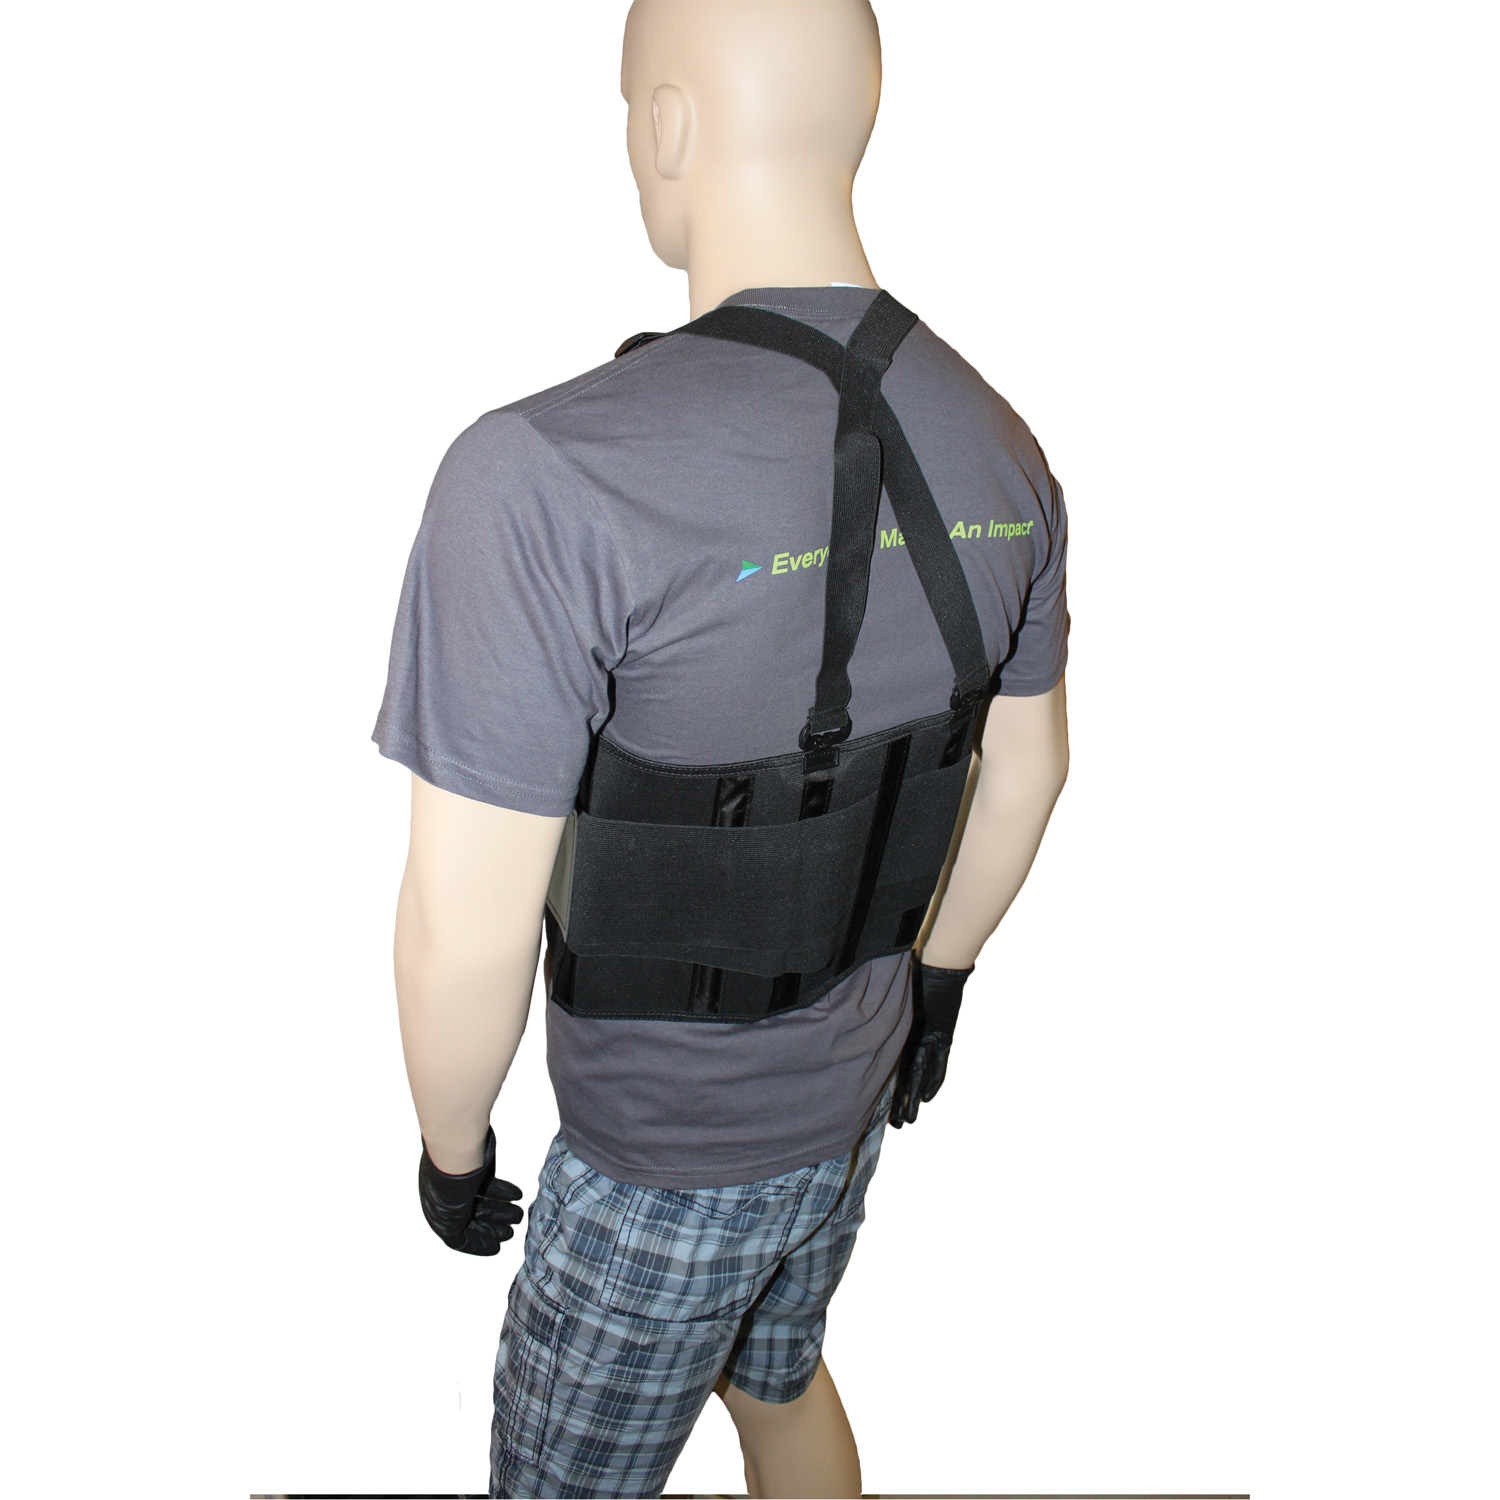 Impact Products 7379L back support belt